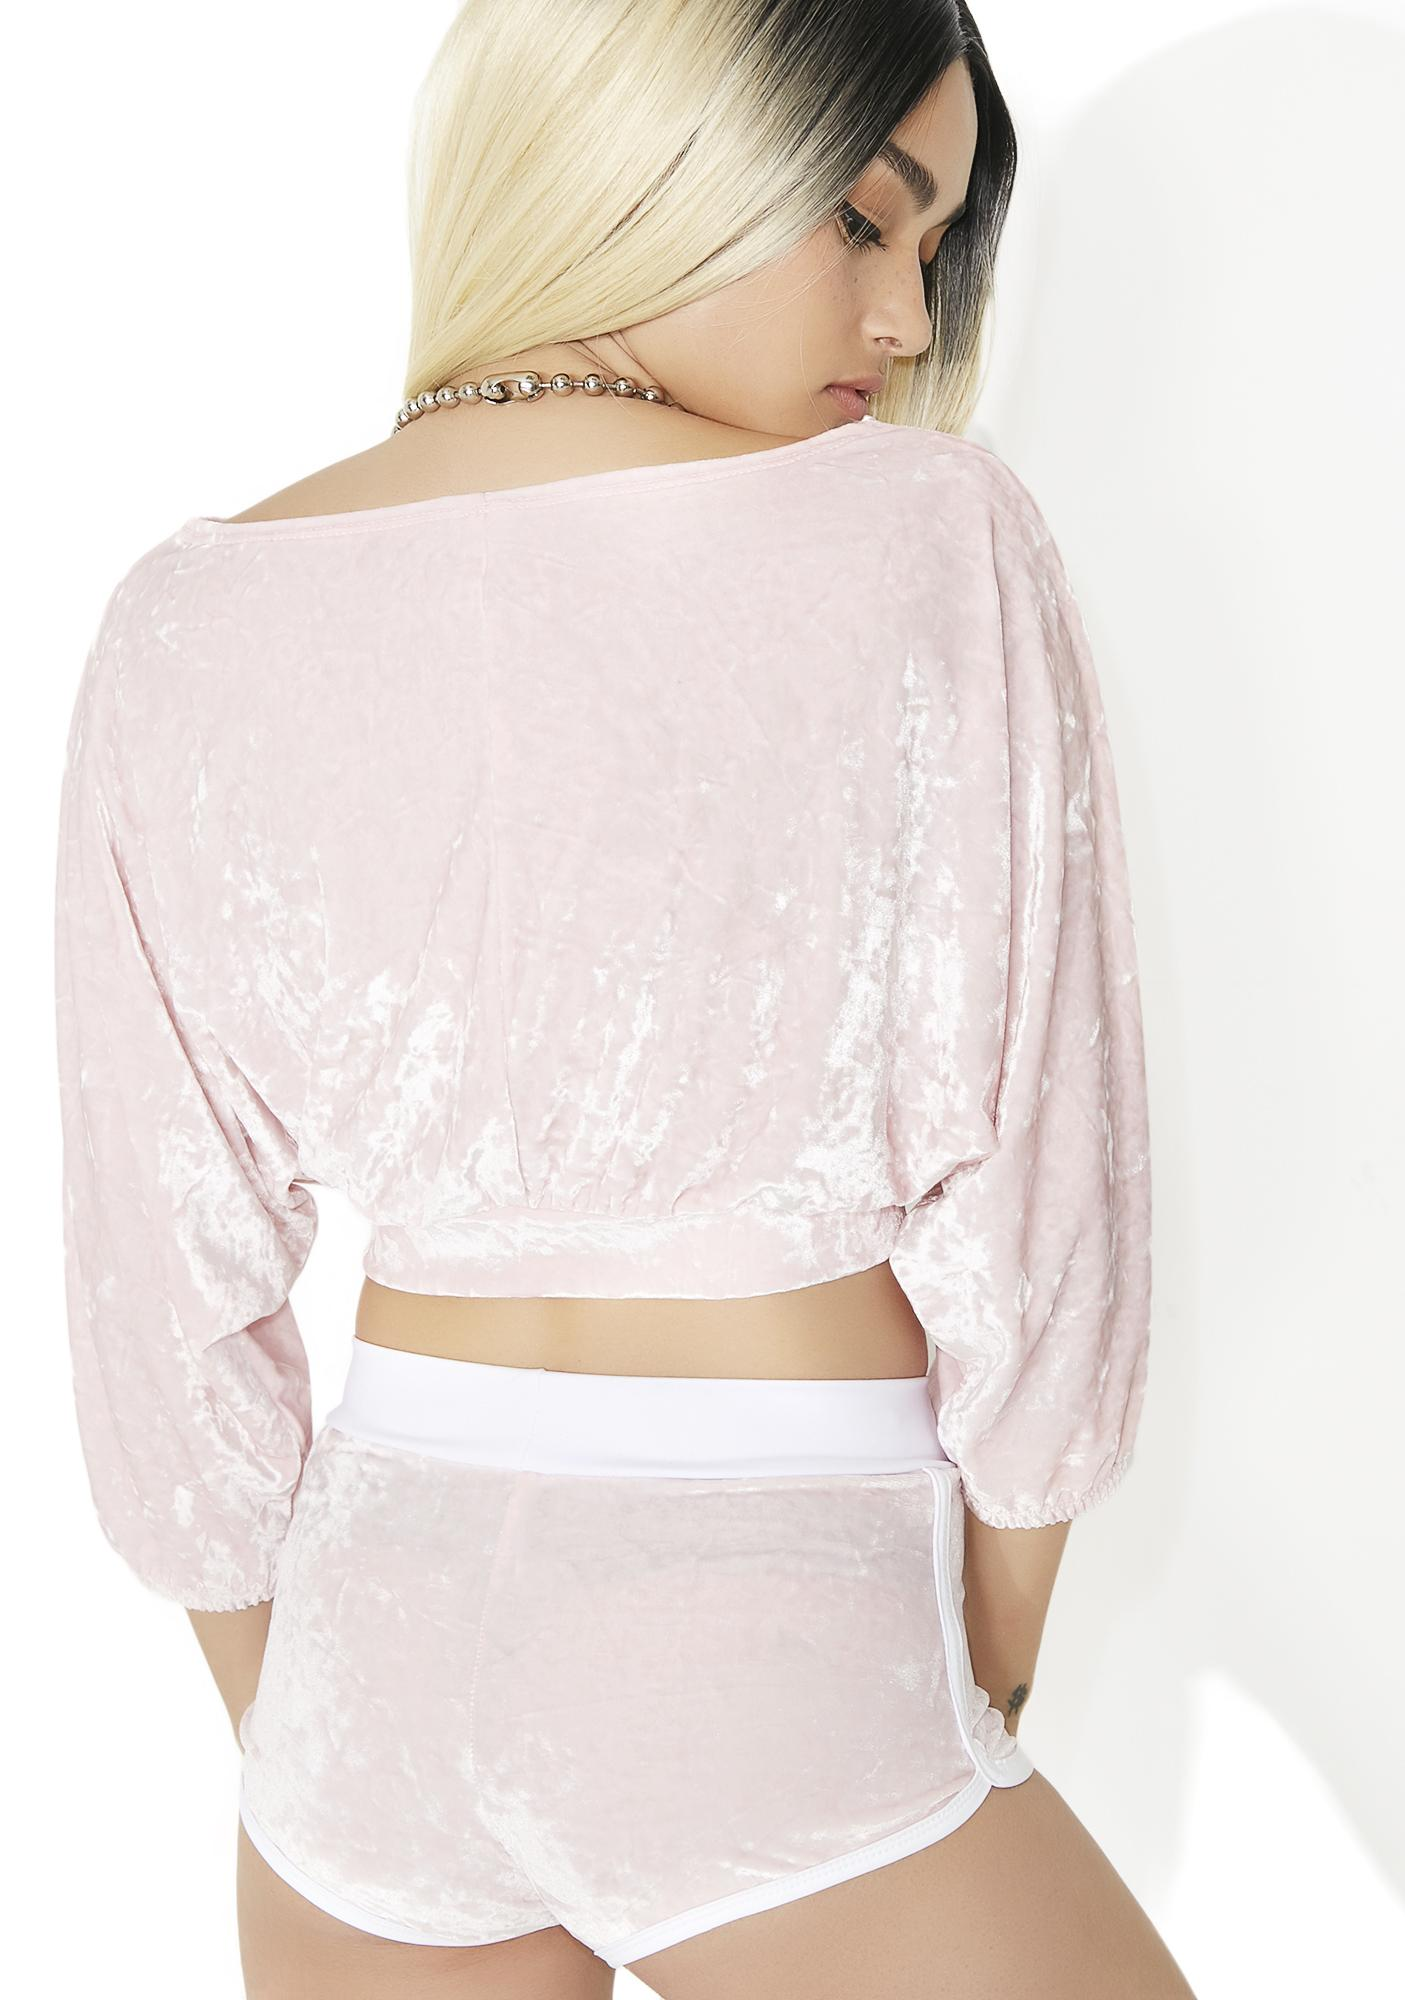 Sugarpuss Sweet N' Sassy Velvet Crop Top